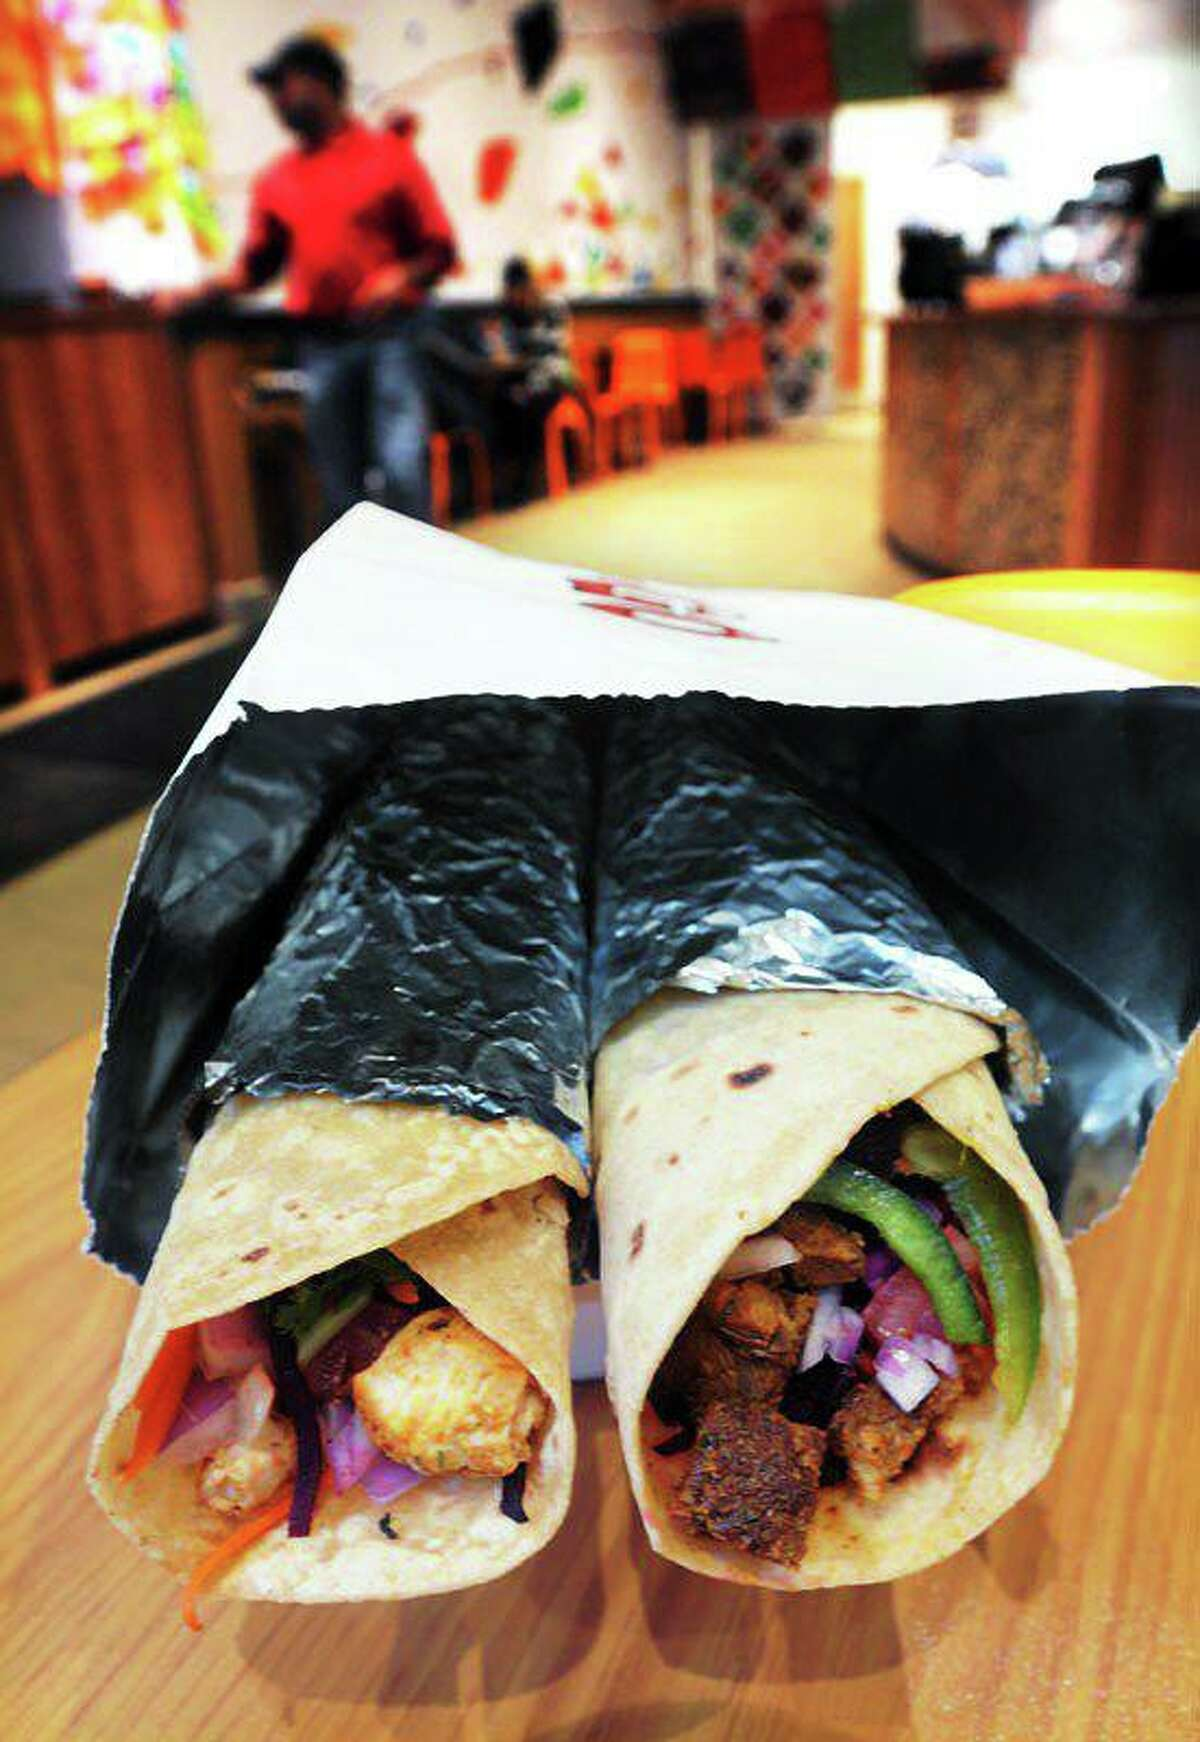 Two roti wraps, one with chicken tikka, left, and lamb kebab, right, at the Tikkaway Grill in New Haven, which has participated in the city's parklet program.